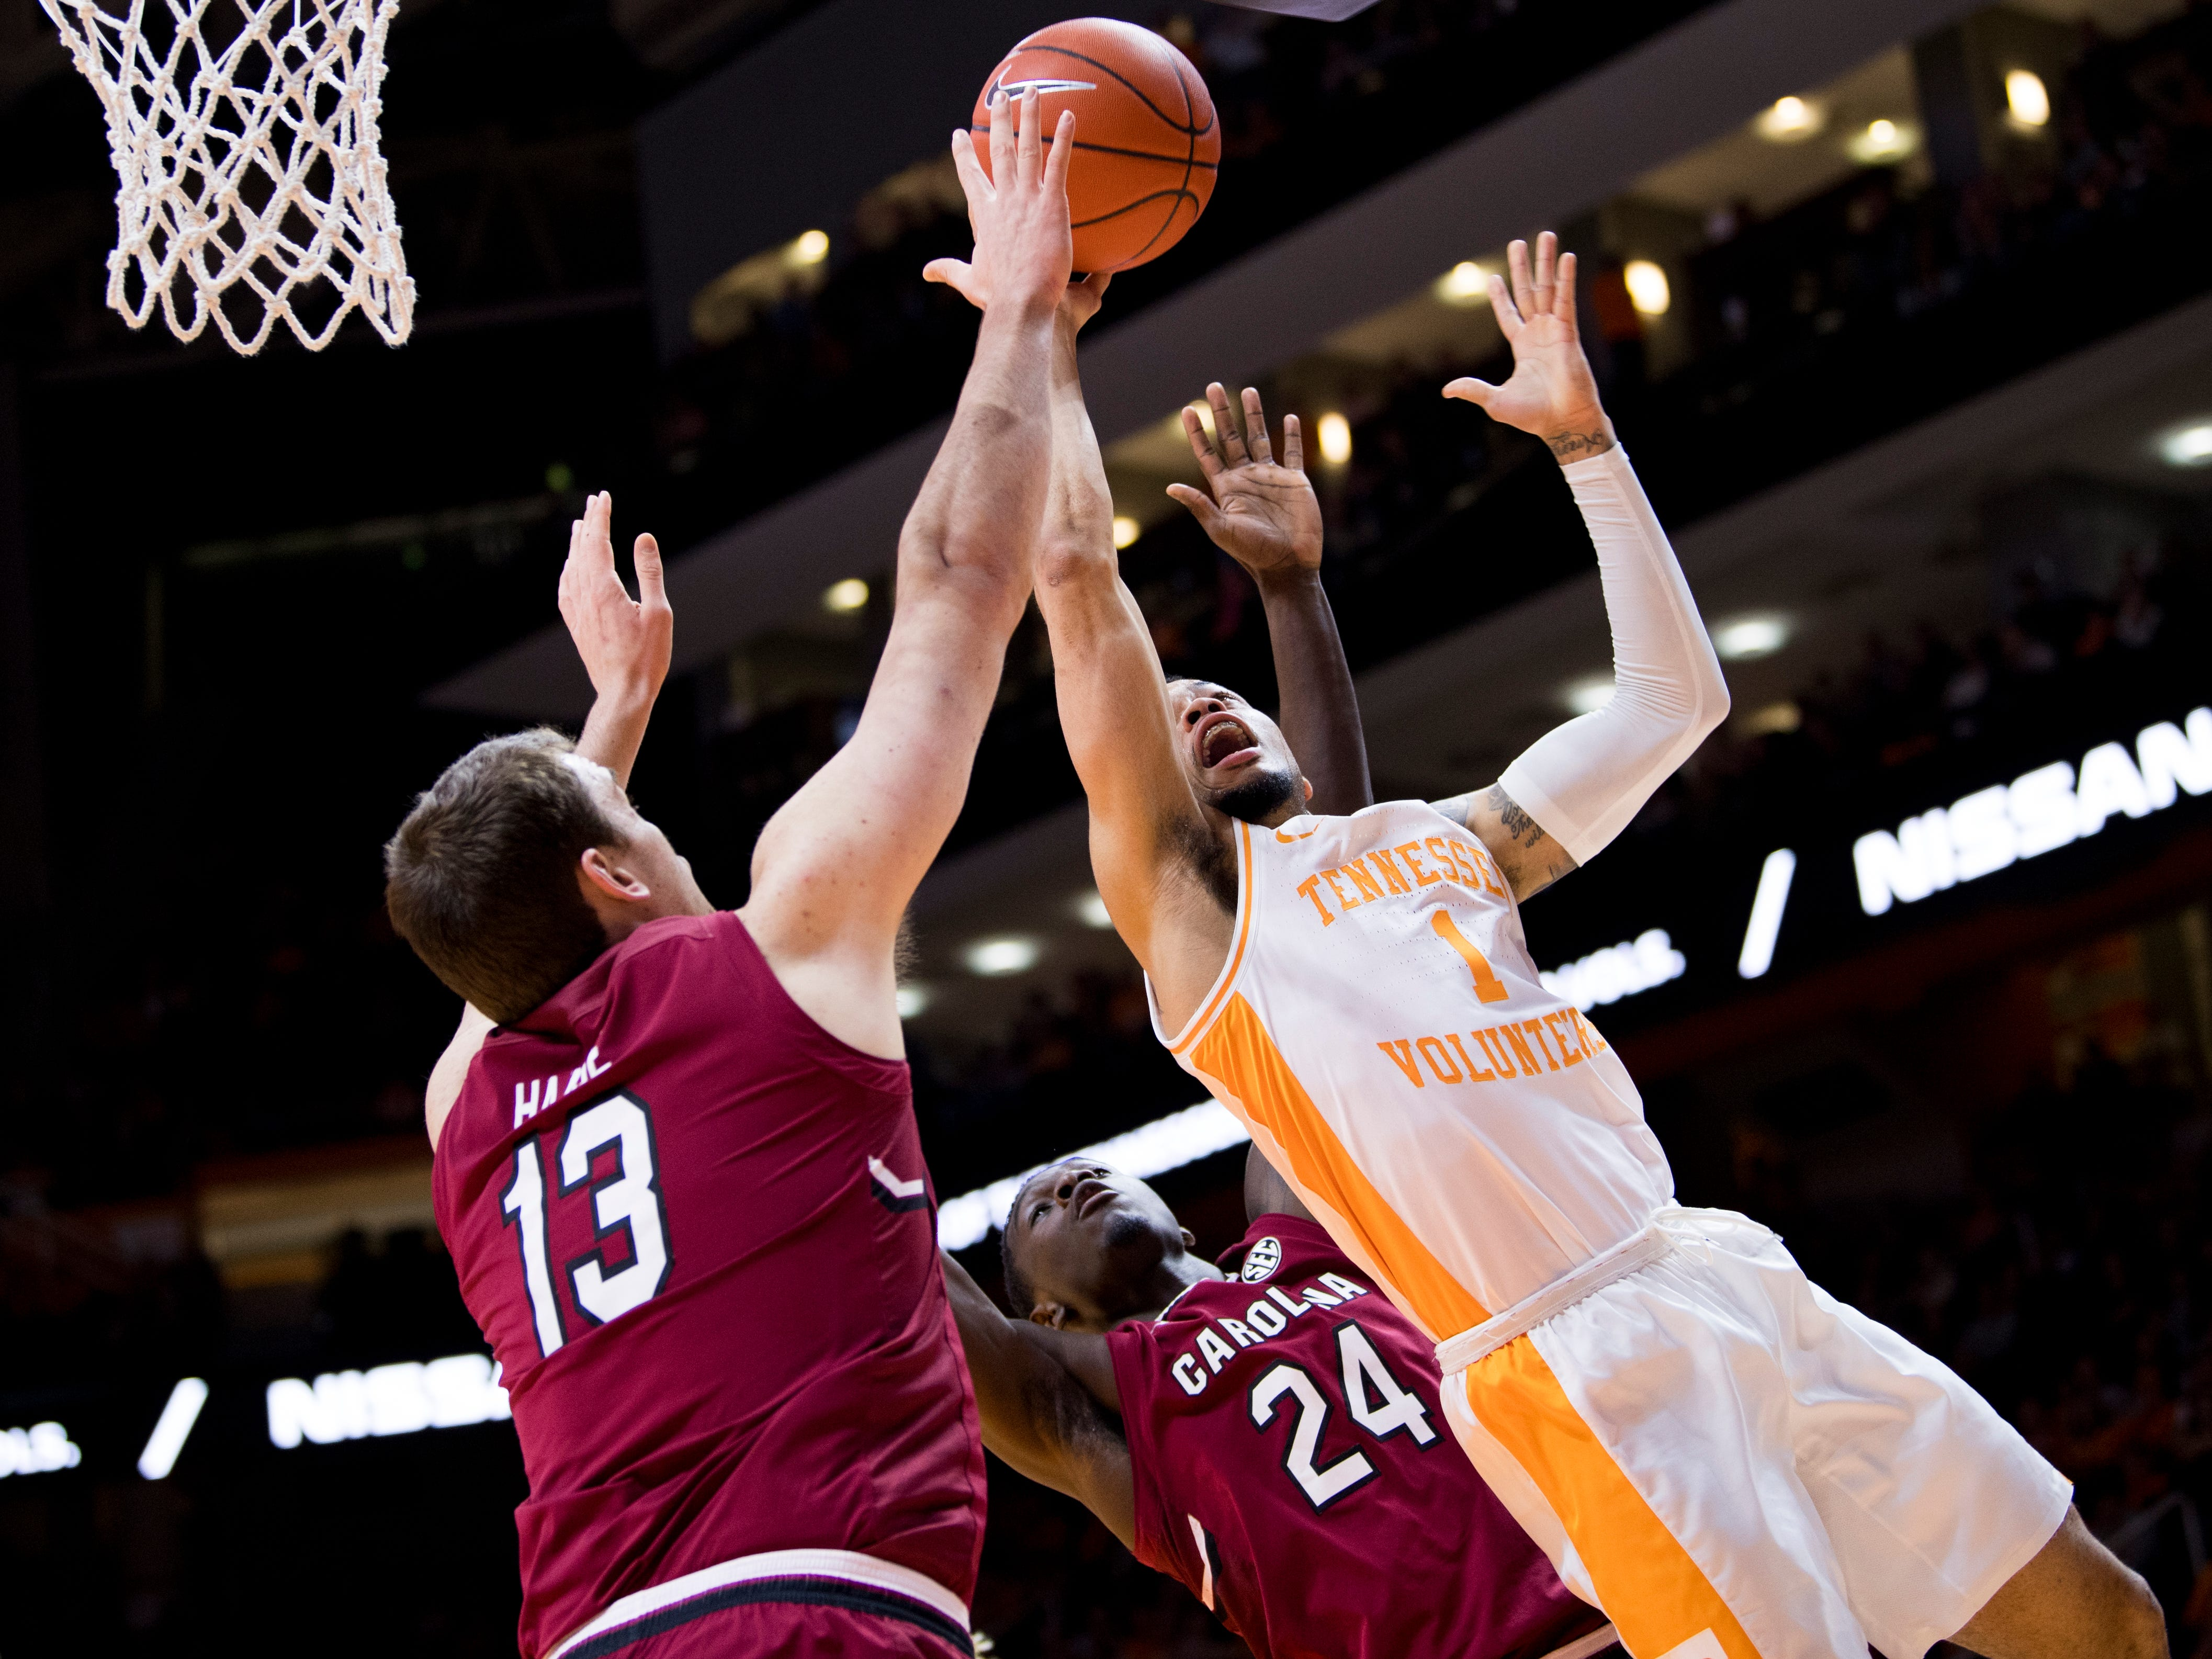 Tennessee guard Lamonte Turner (1) attempts a shot during Tennessee's home SEC game against South Carolina at Thompson-Boling Arena in Knoxville on Wednesday, February 13, 2019.